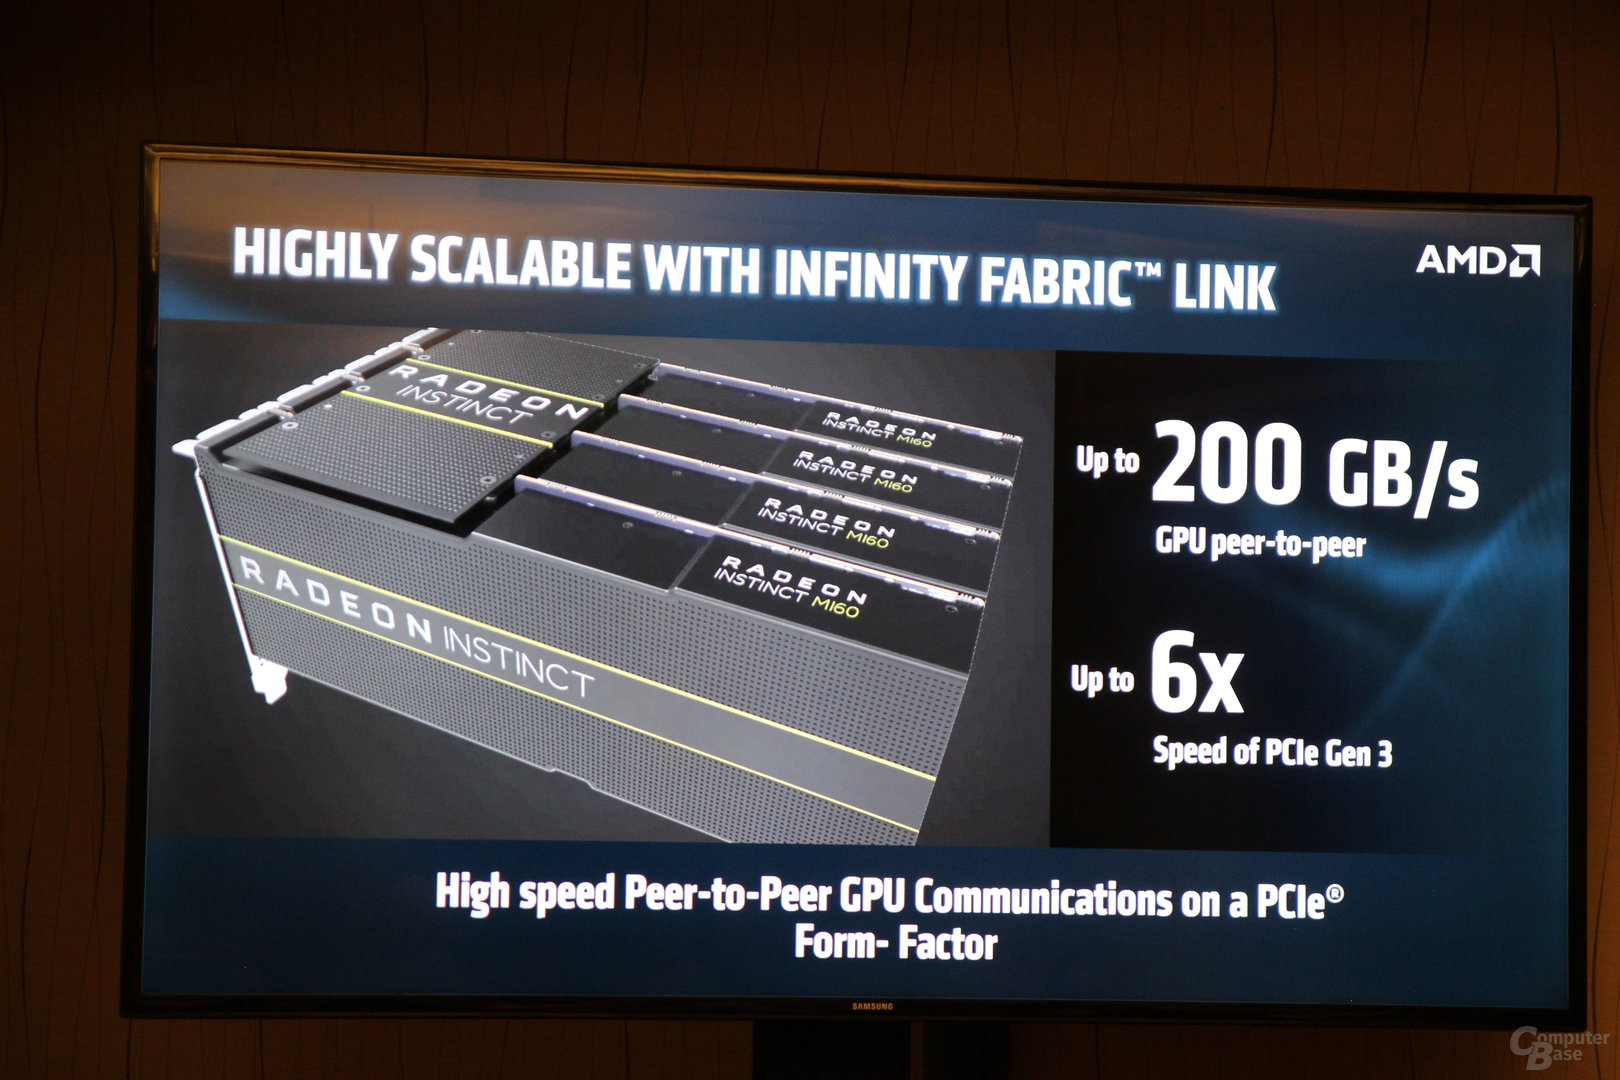 Infinity Fabric Link